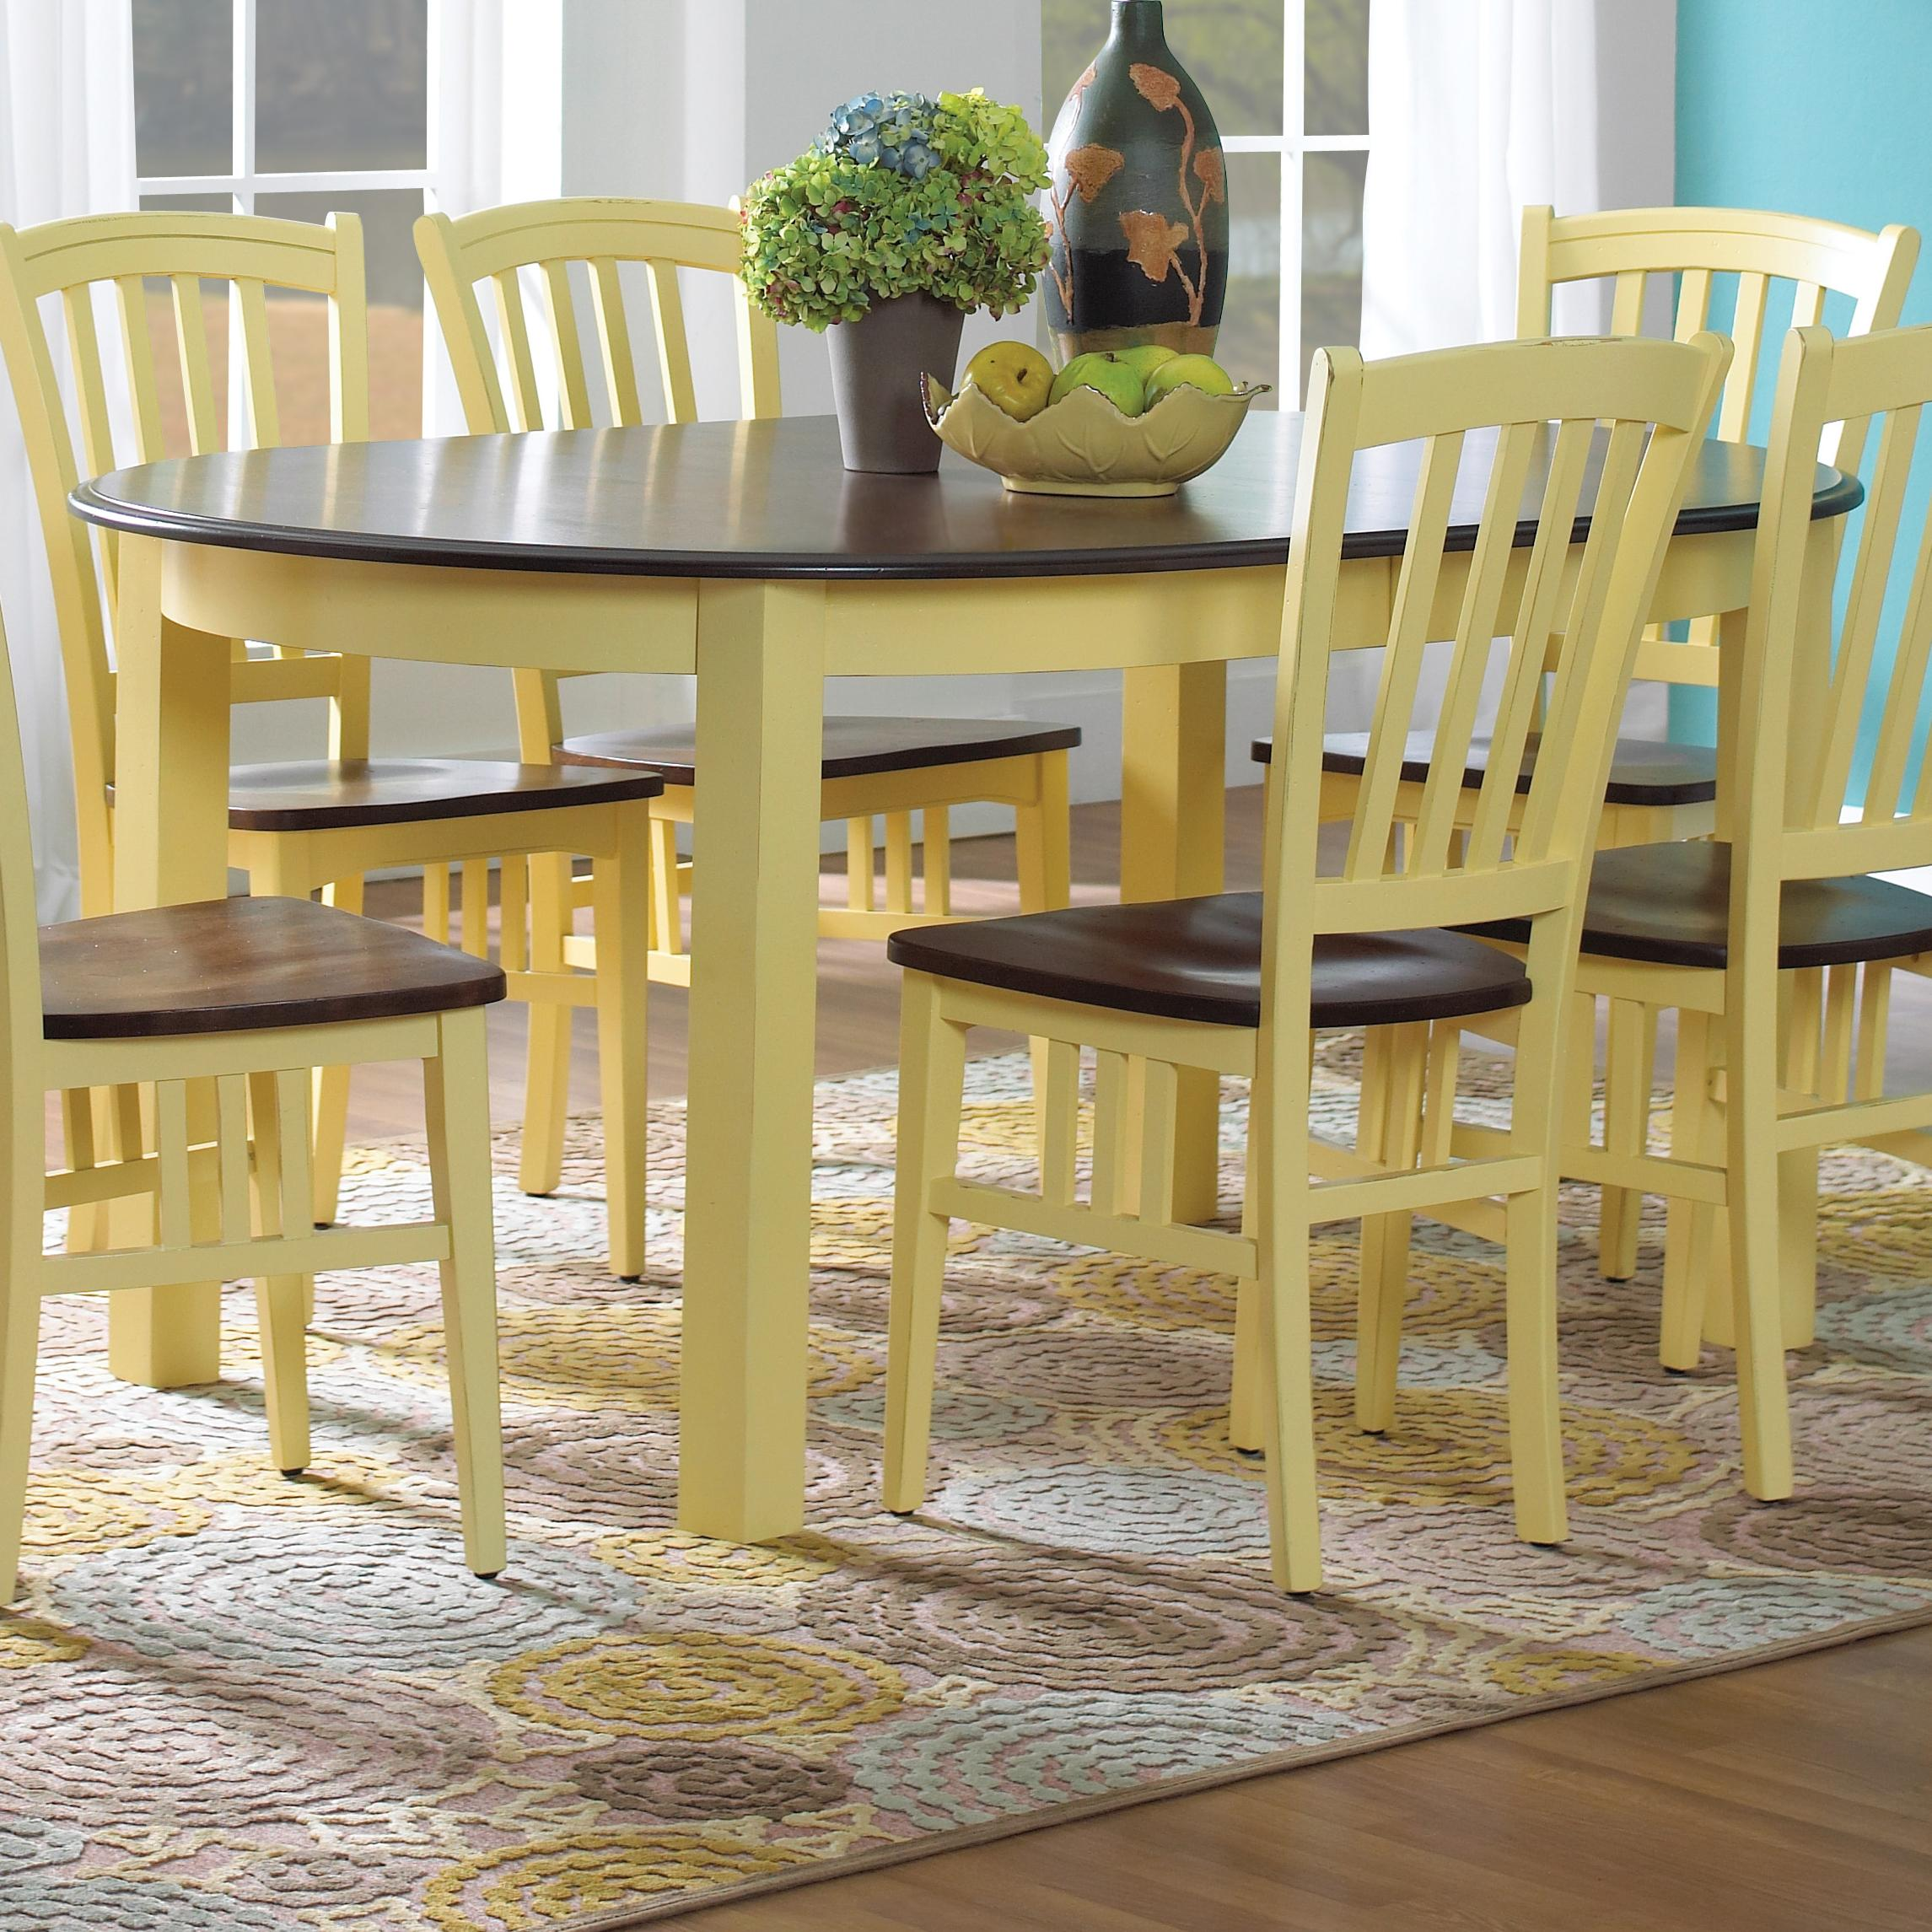 Custom Dining Customizable Oval Table with Legs by Canadel at Dinette Depot